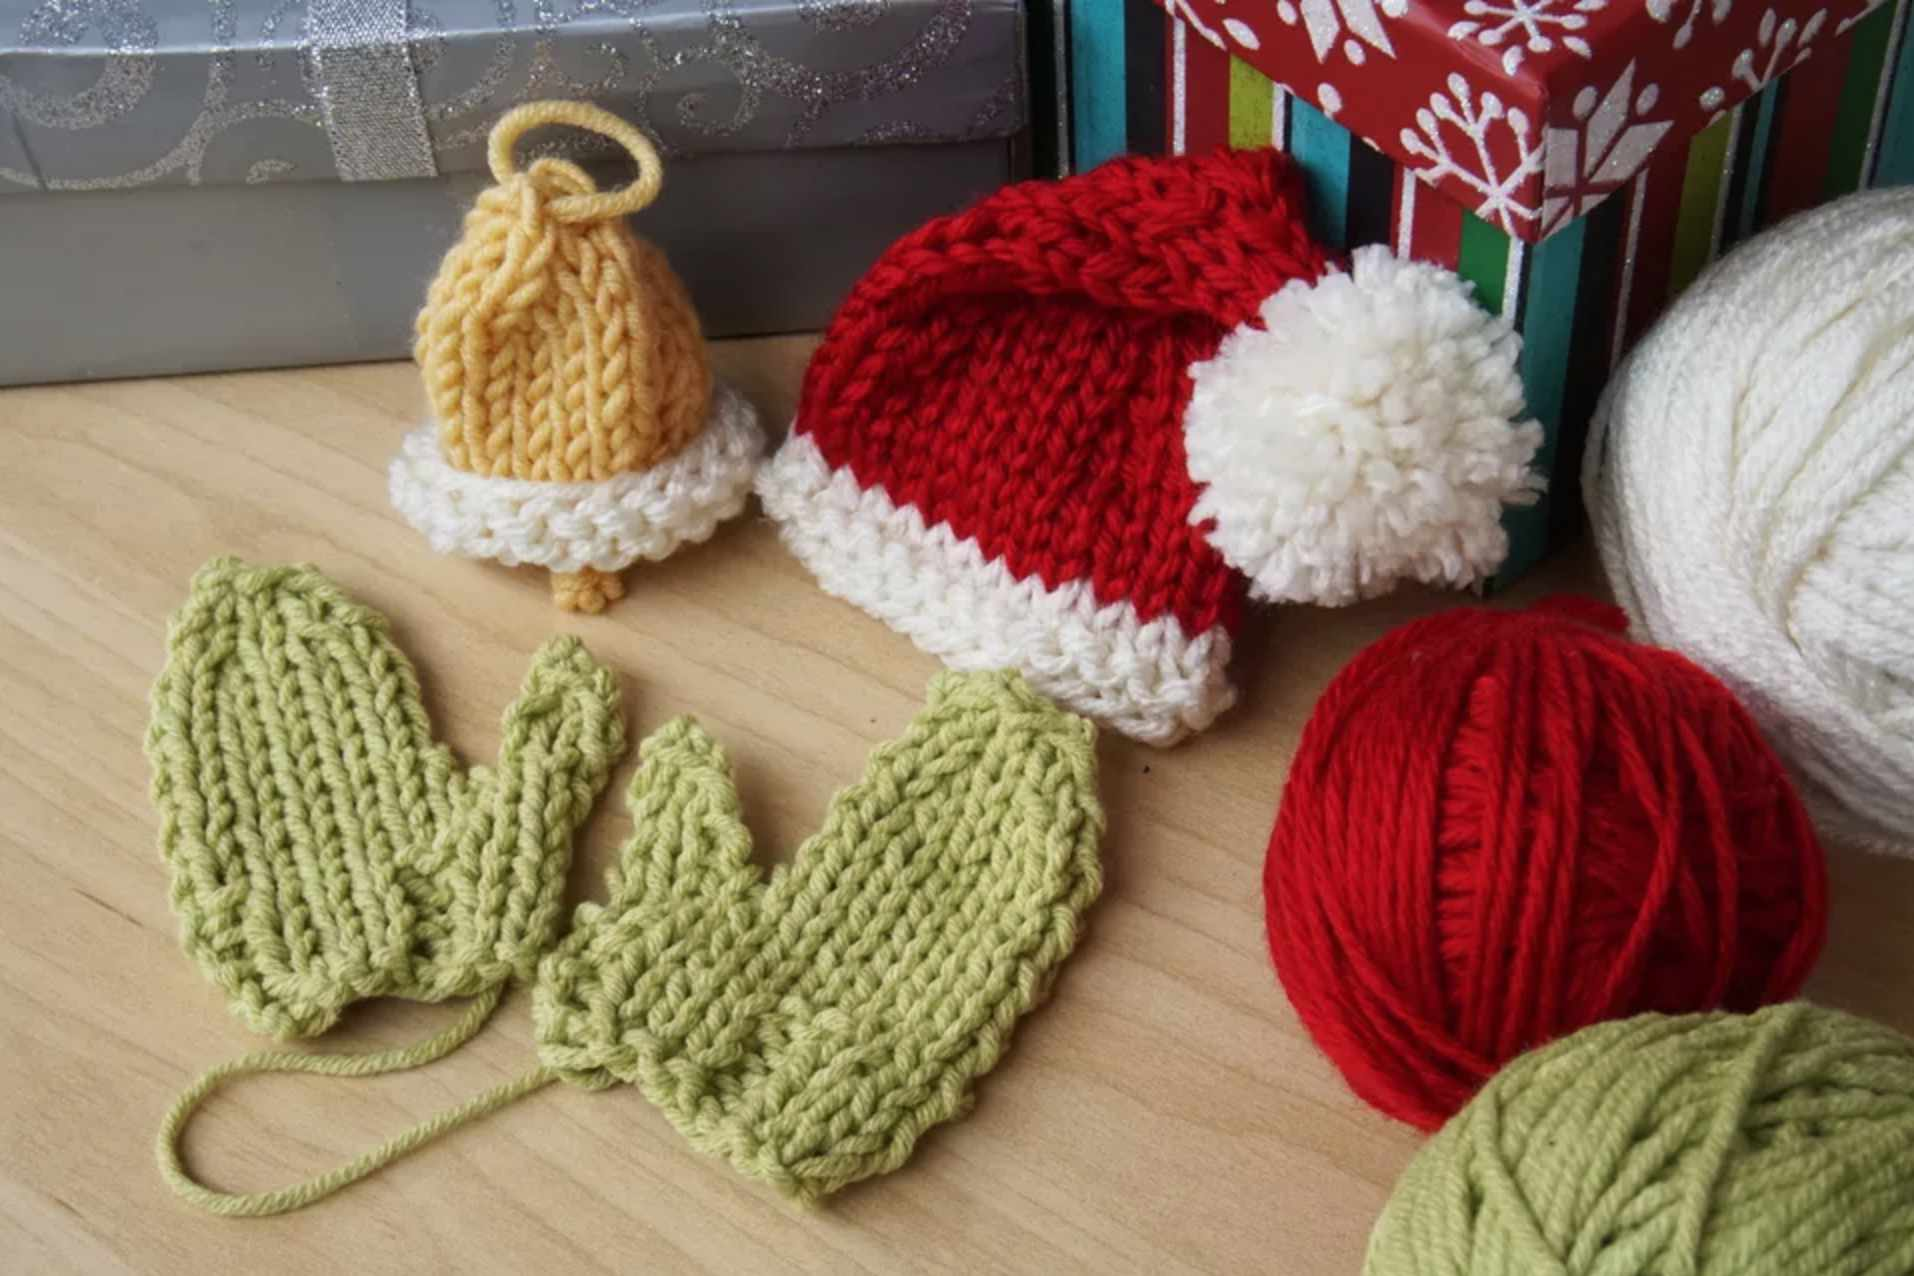 stitch craft create knitting 13 quick easy knitting projects various